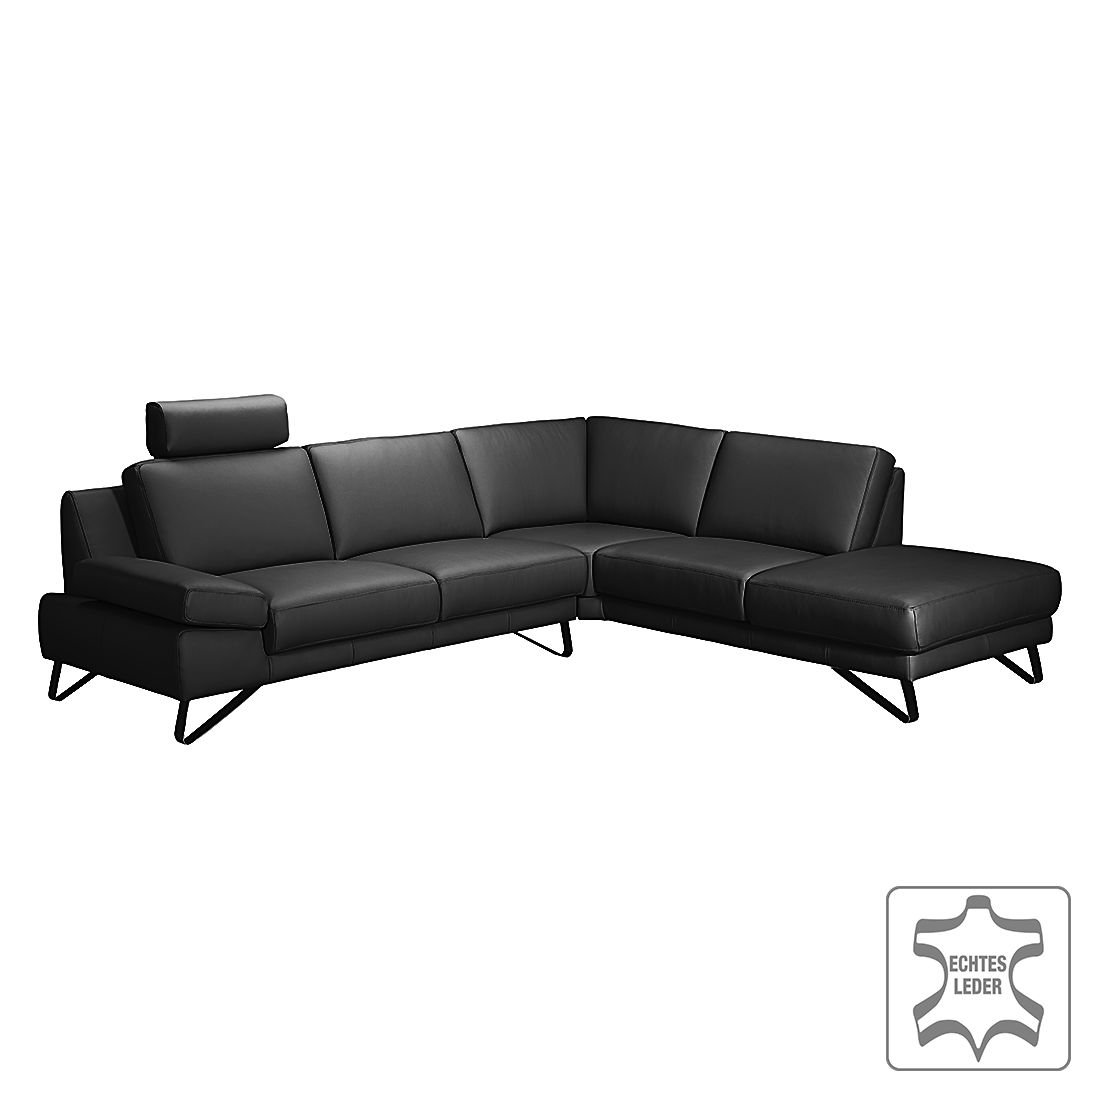 ecksofa silvano echtleder schwarz ottomane davorstehend rechts mit 1 kopfst tze loftscape. Black Bedroom Furniture Sets. Home Design Ideas